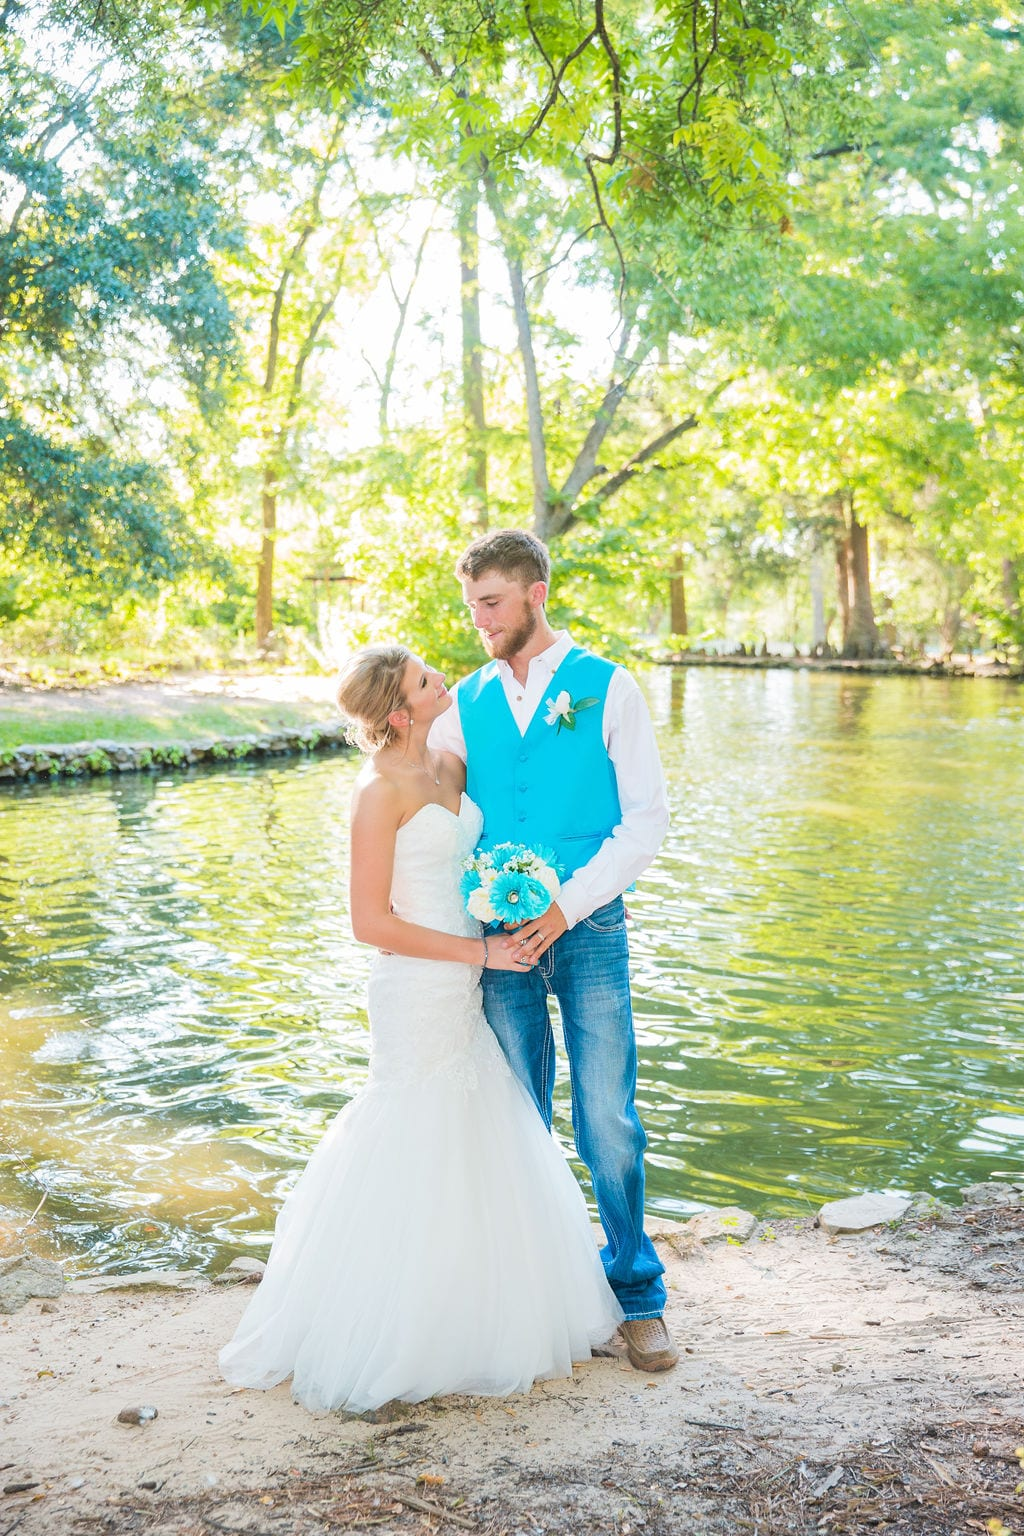 Courtney and Bearen's Wedding couple by pond